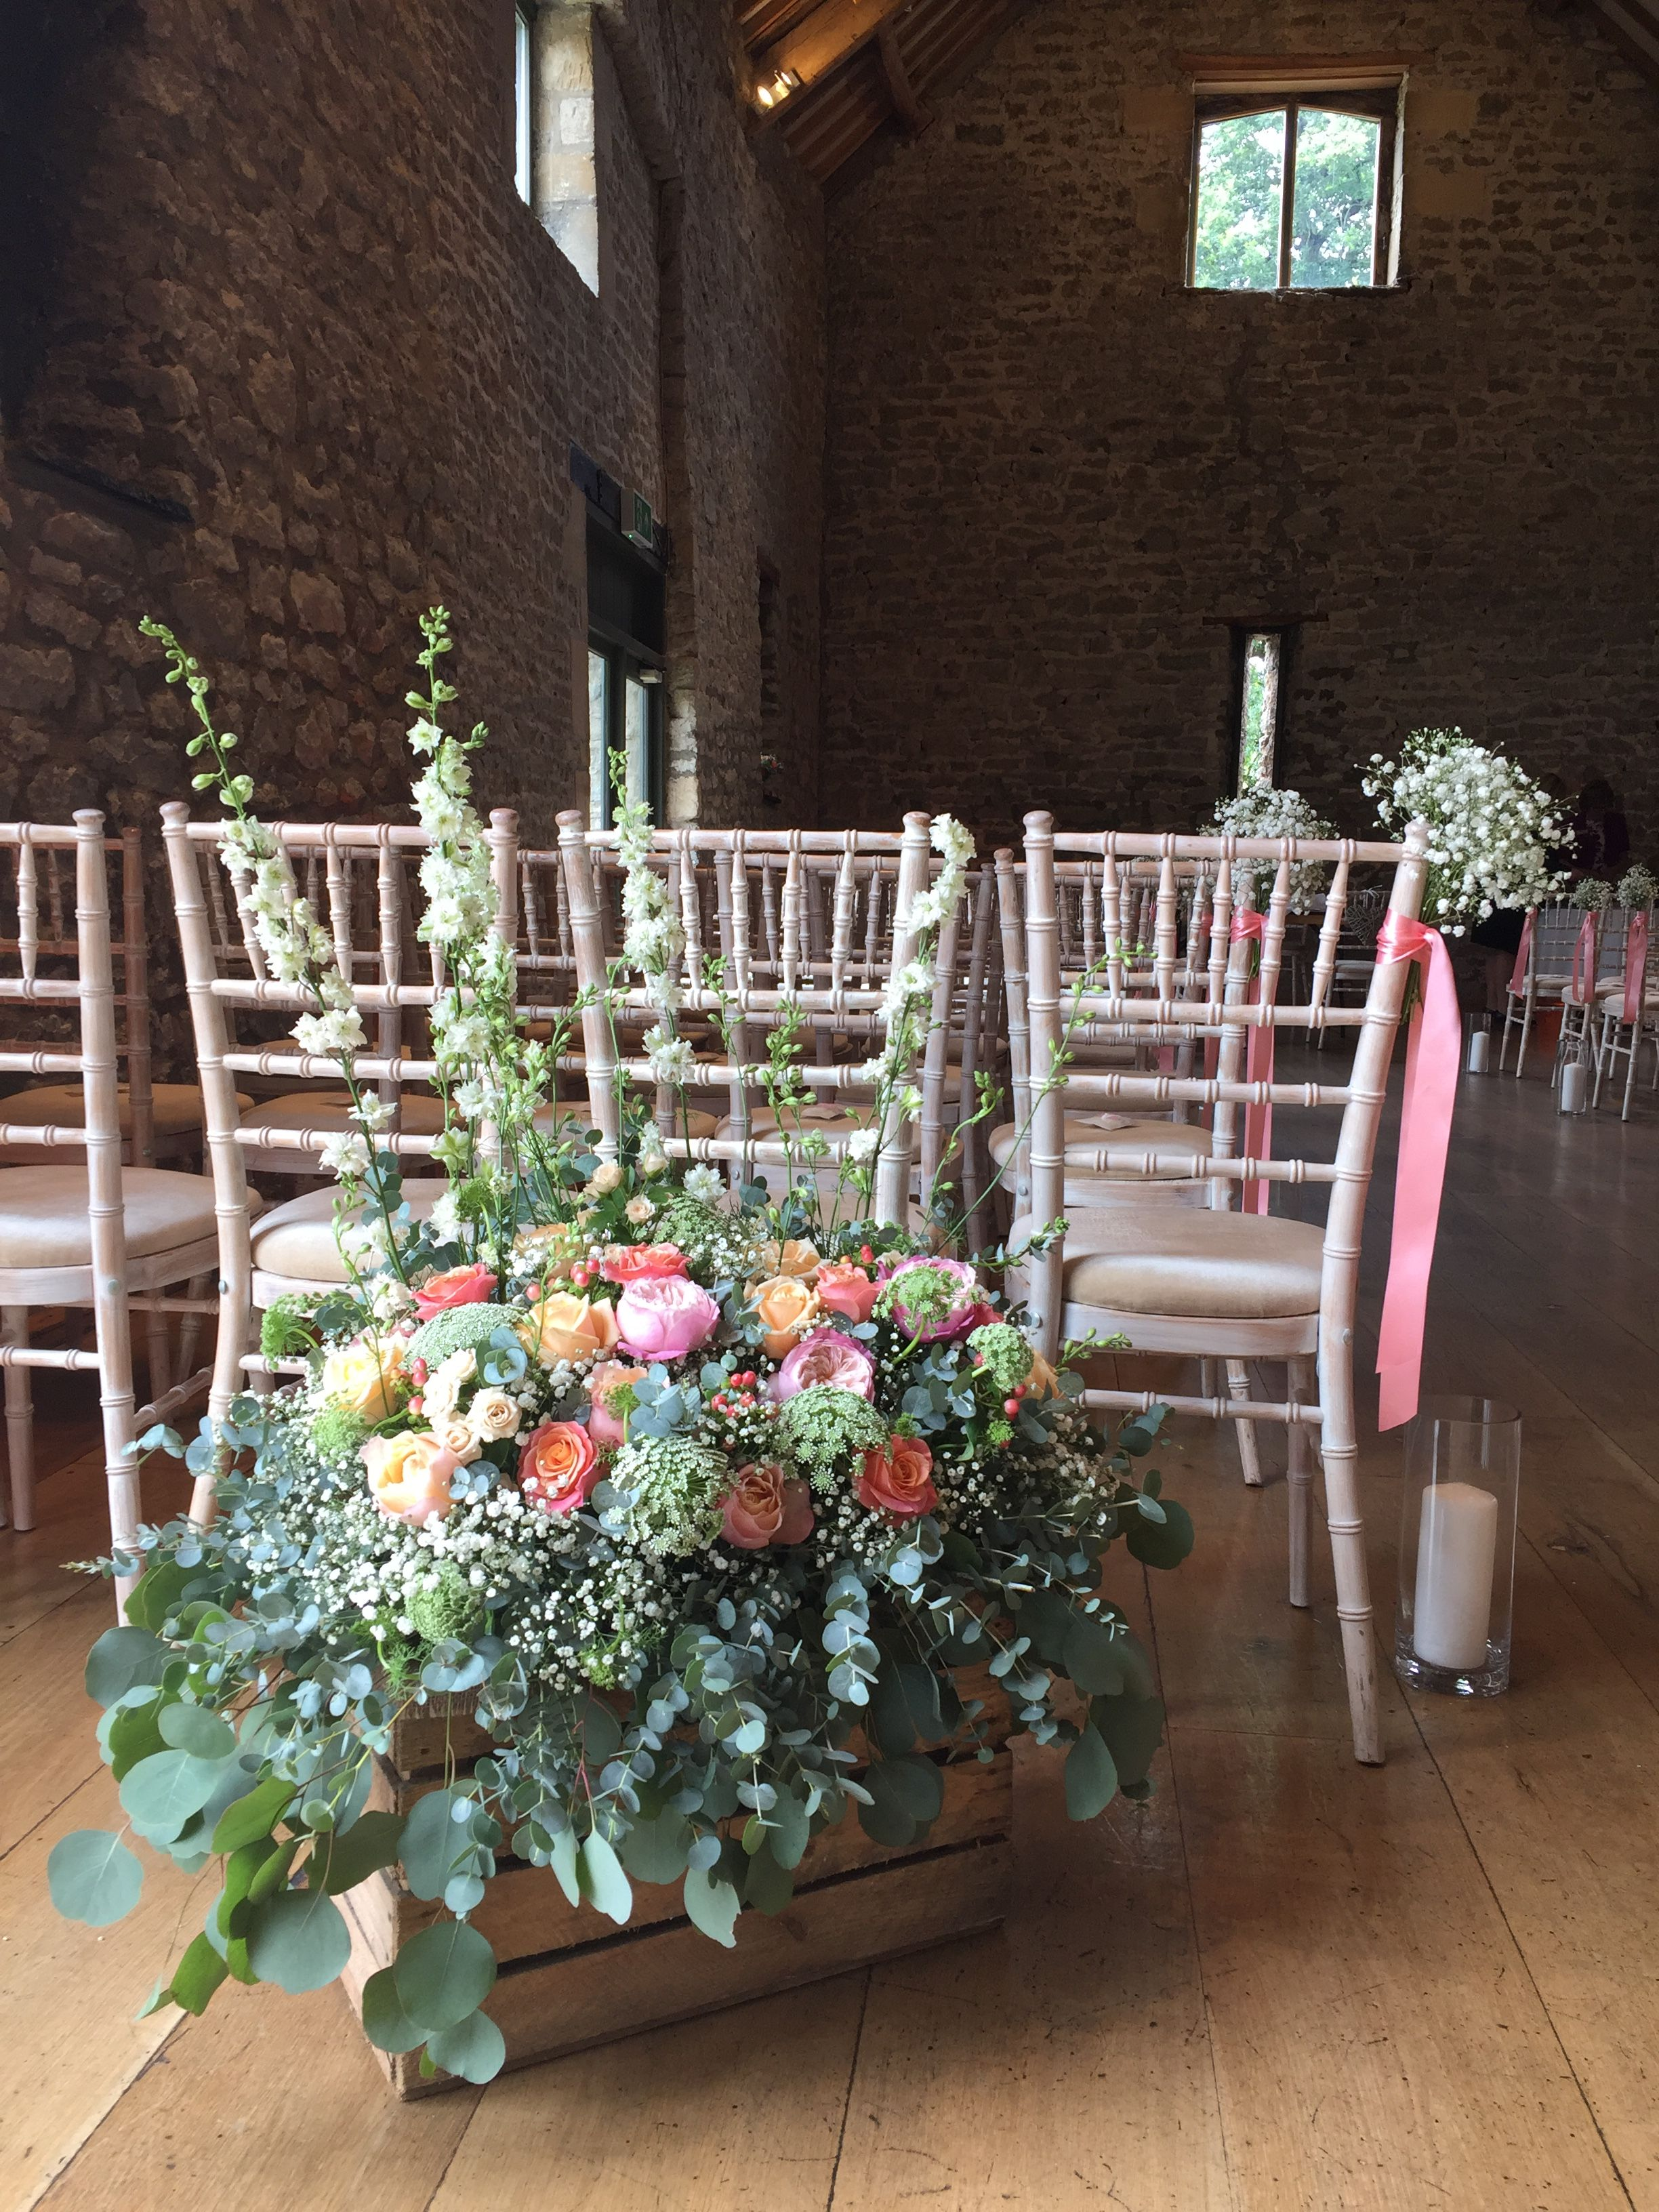 Pin by Priston Mill on The Flowers | Wedding venues ...